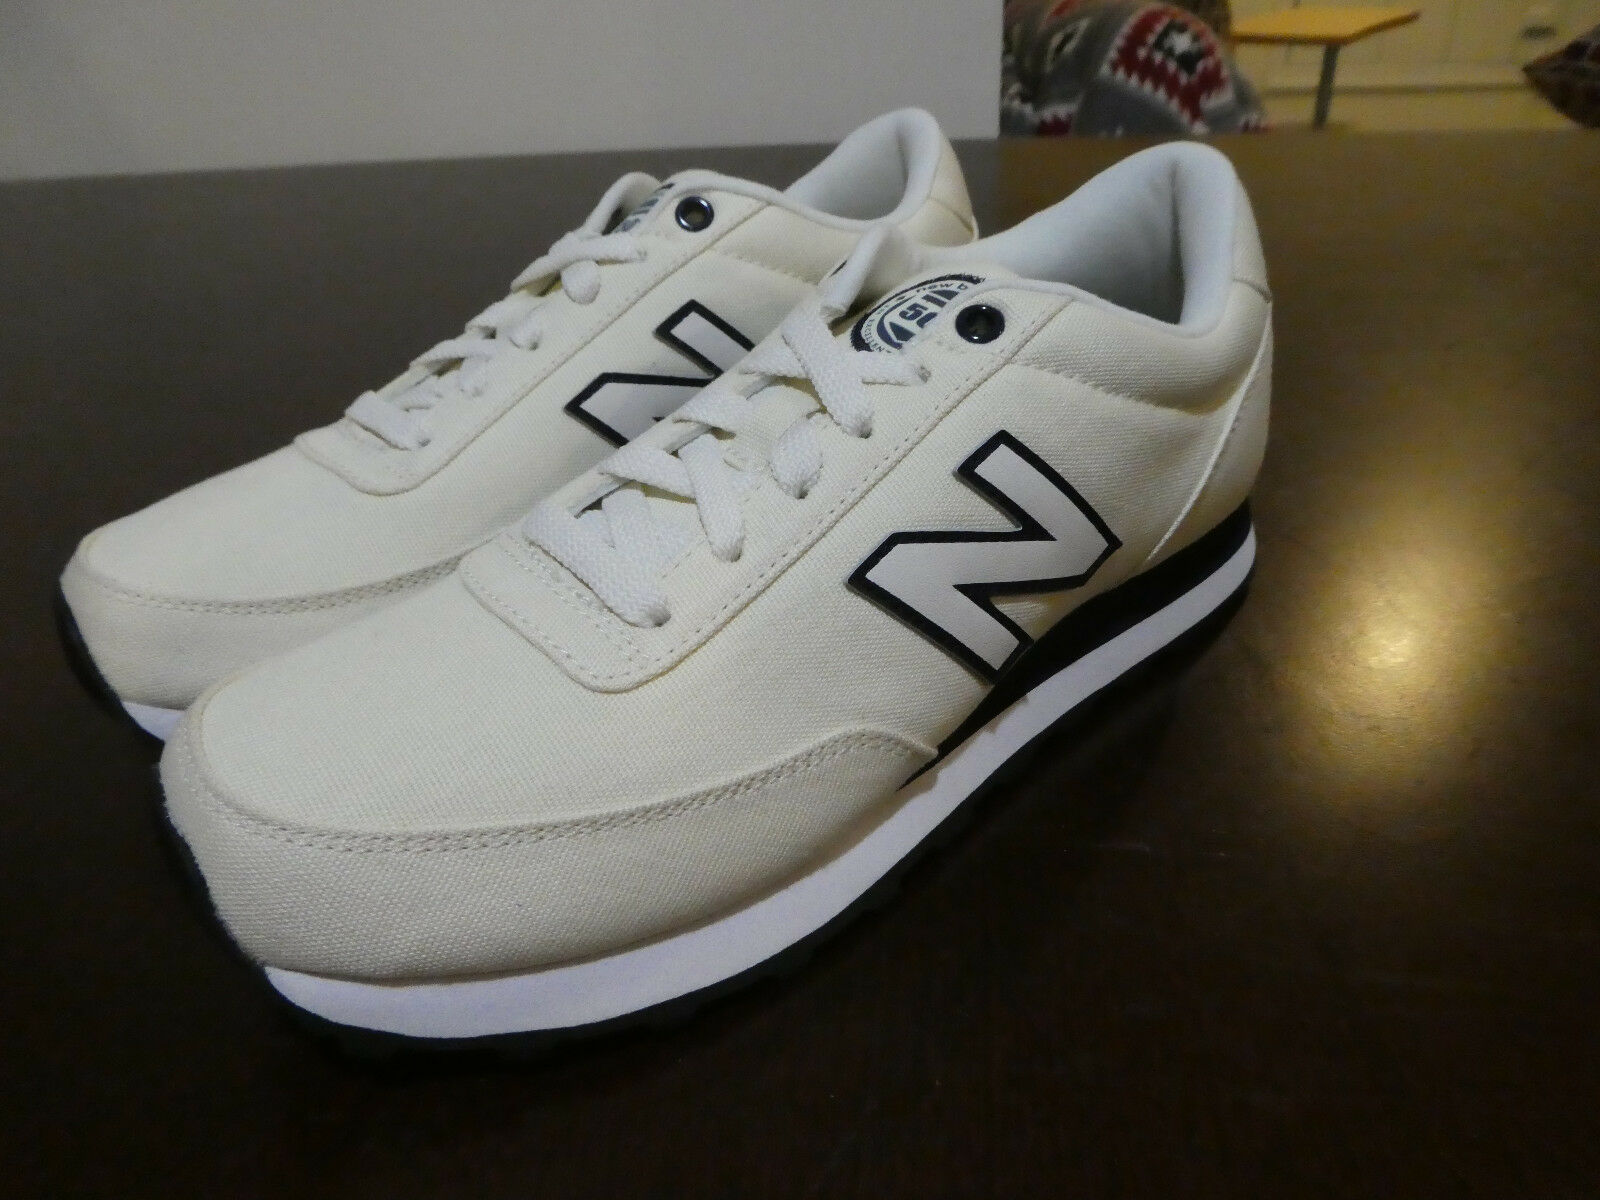 Womens New Balance 501 Shoes Size 7 WL501SPS Sneakers